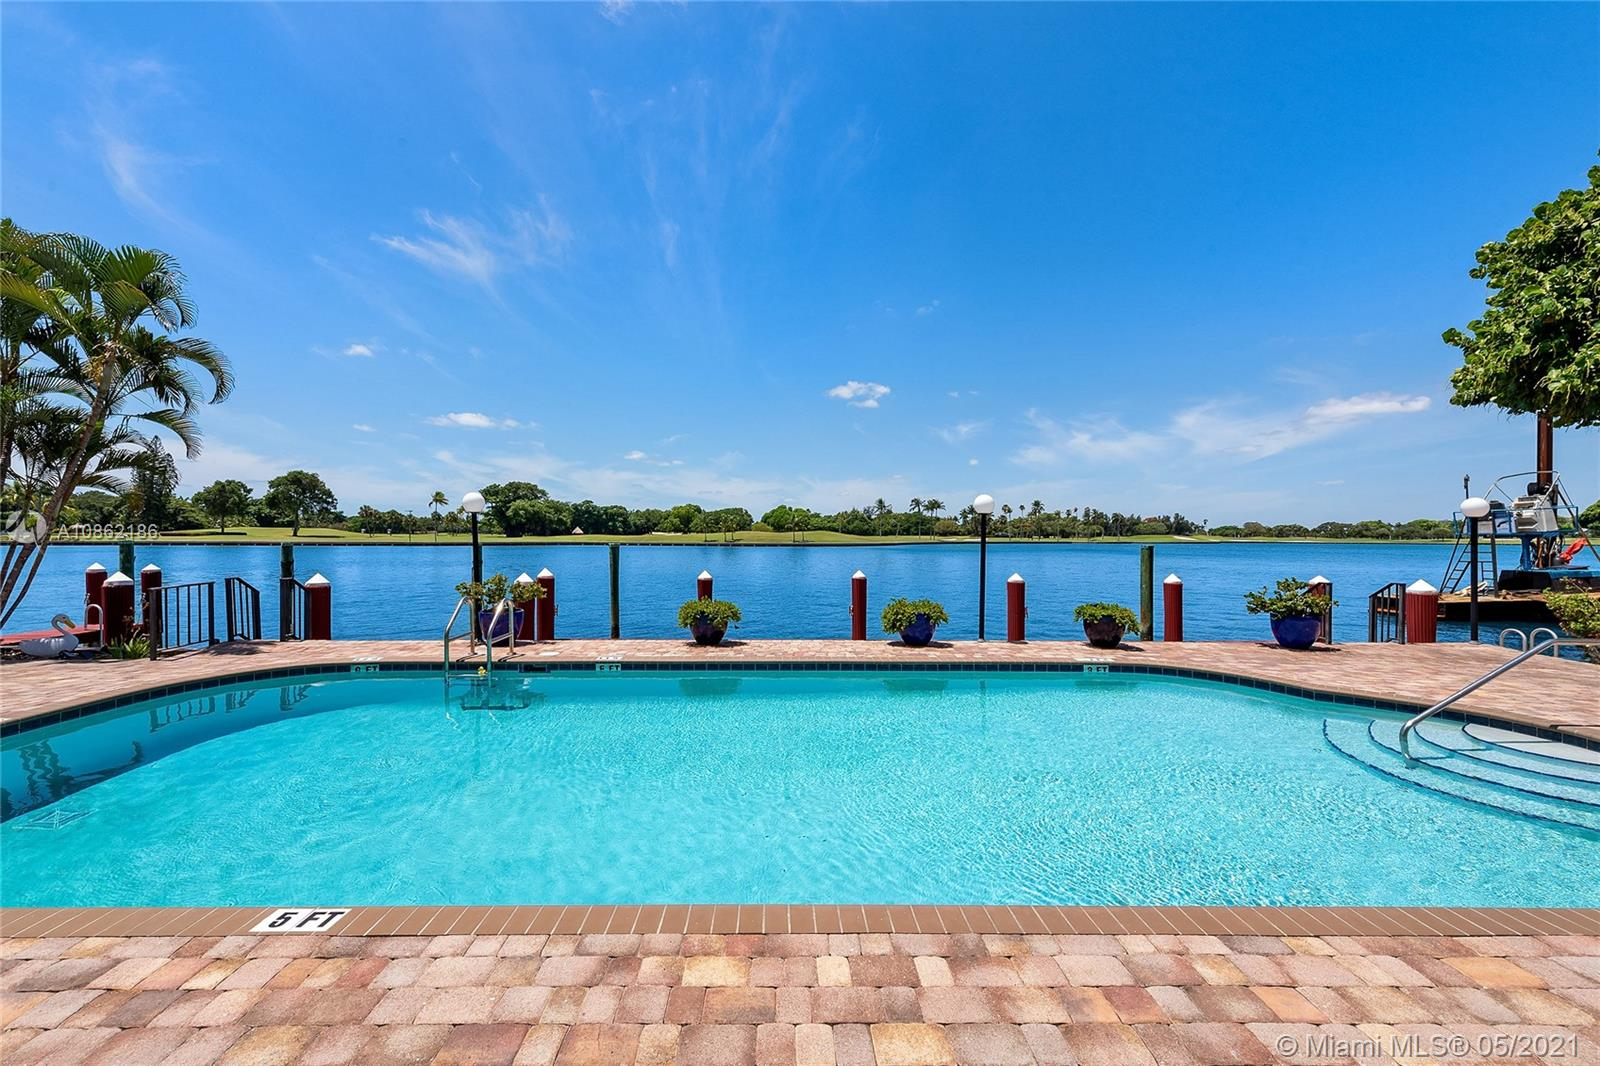 Boat Dock Available. For only the second time in 6 years, a stunning bay view residence has become available in the boutique Monterey property on Bay Harbor Islands. Only 18 owners can call this spot home with wide water and Indian Creek Golf Course views. Unit 3A boasts 2,103 square feet plus a 210 sq ft private lanai where you can watch for yachts, dolphins, and manatees. Impact windows! Current floor plan 2 bedroom 2.5 baths but can be remodeled into a spacious 3 bedroom. Freshly painted building passed 40 Year Inspection: new elevator and fire system. All the elements of a home are available with the convenience of a condo: Climate controlled storage room, salt water pool, billiards, sauna, paddleboard, kayak, bike storage! 2 parking spots Maintenance $883. No Renting